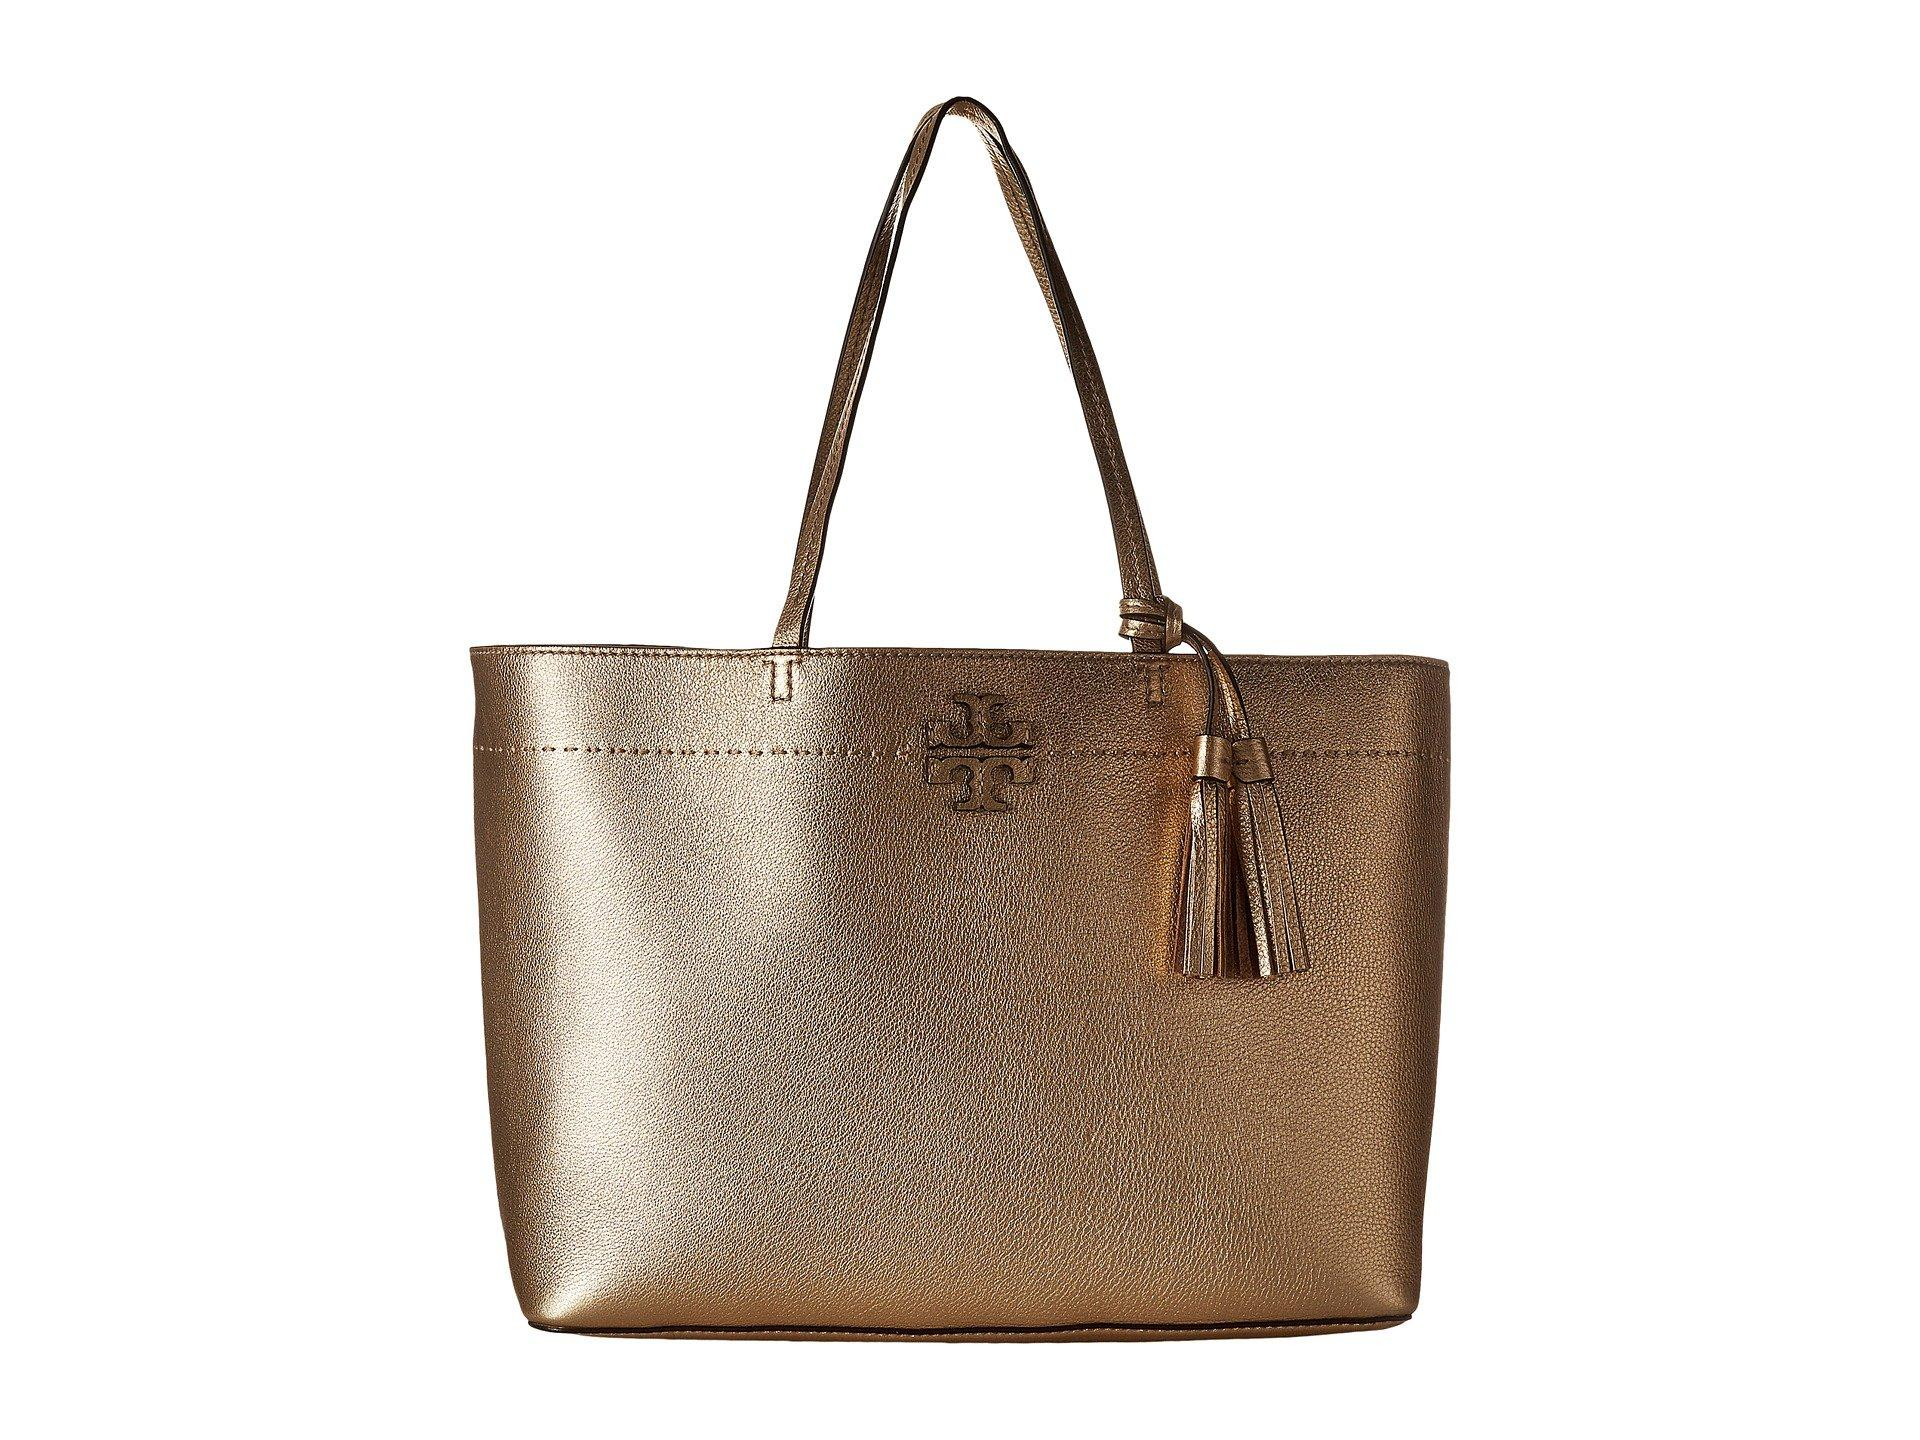 aaae4698428 Lyst - Tory Burch Mcgraw Metallic Tote in Metallic - Save 21%